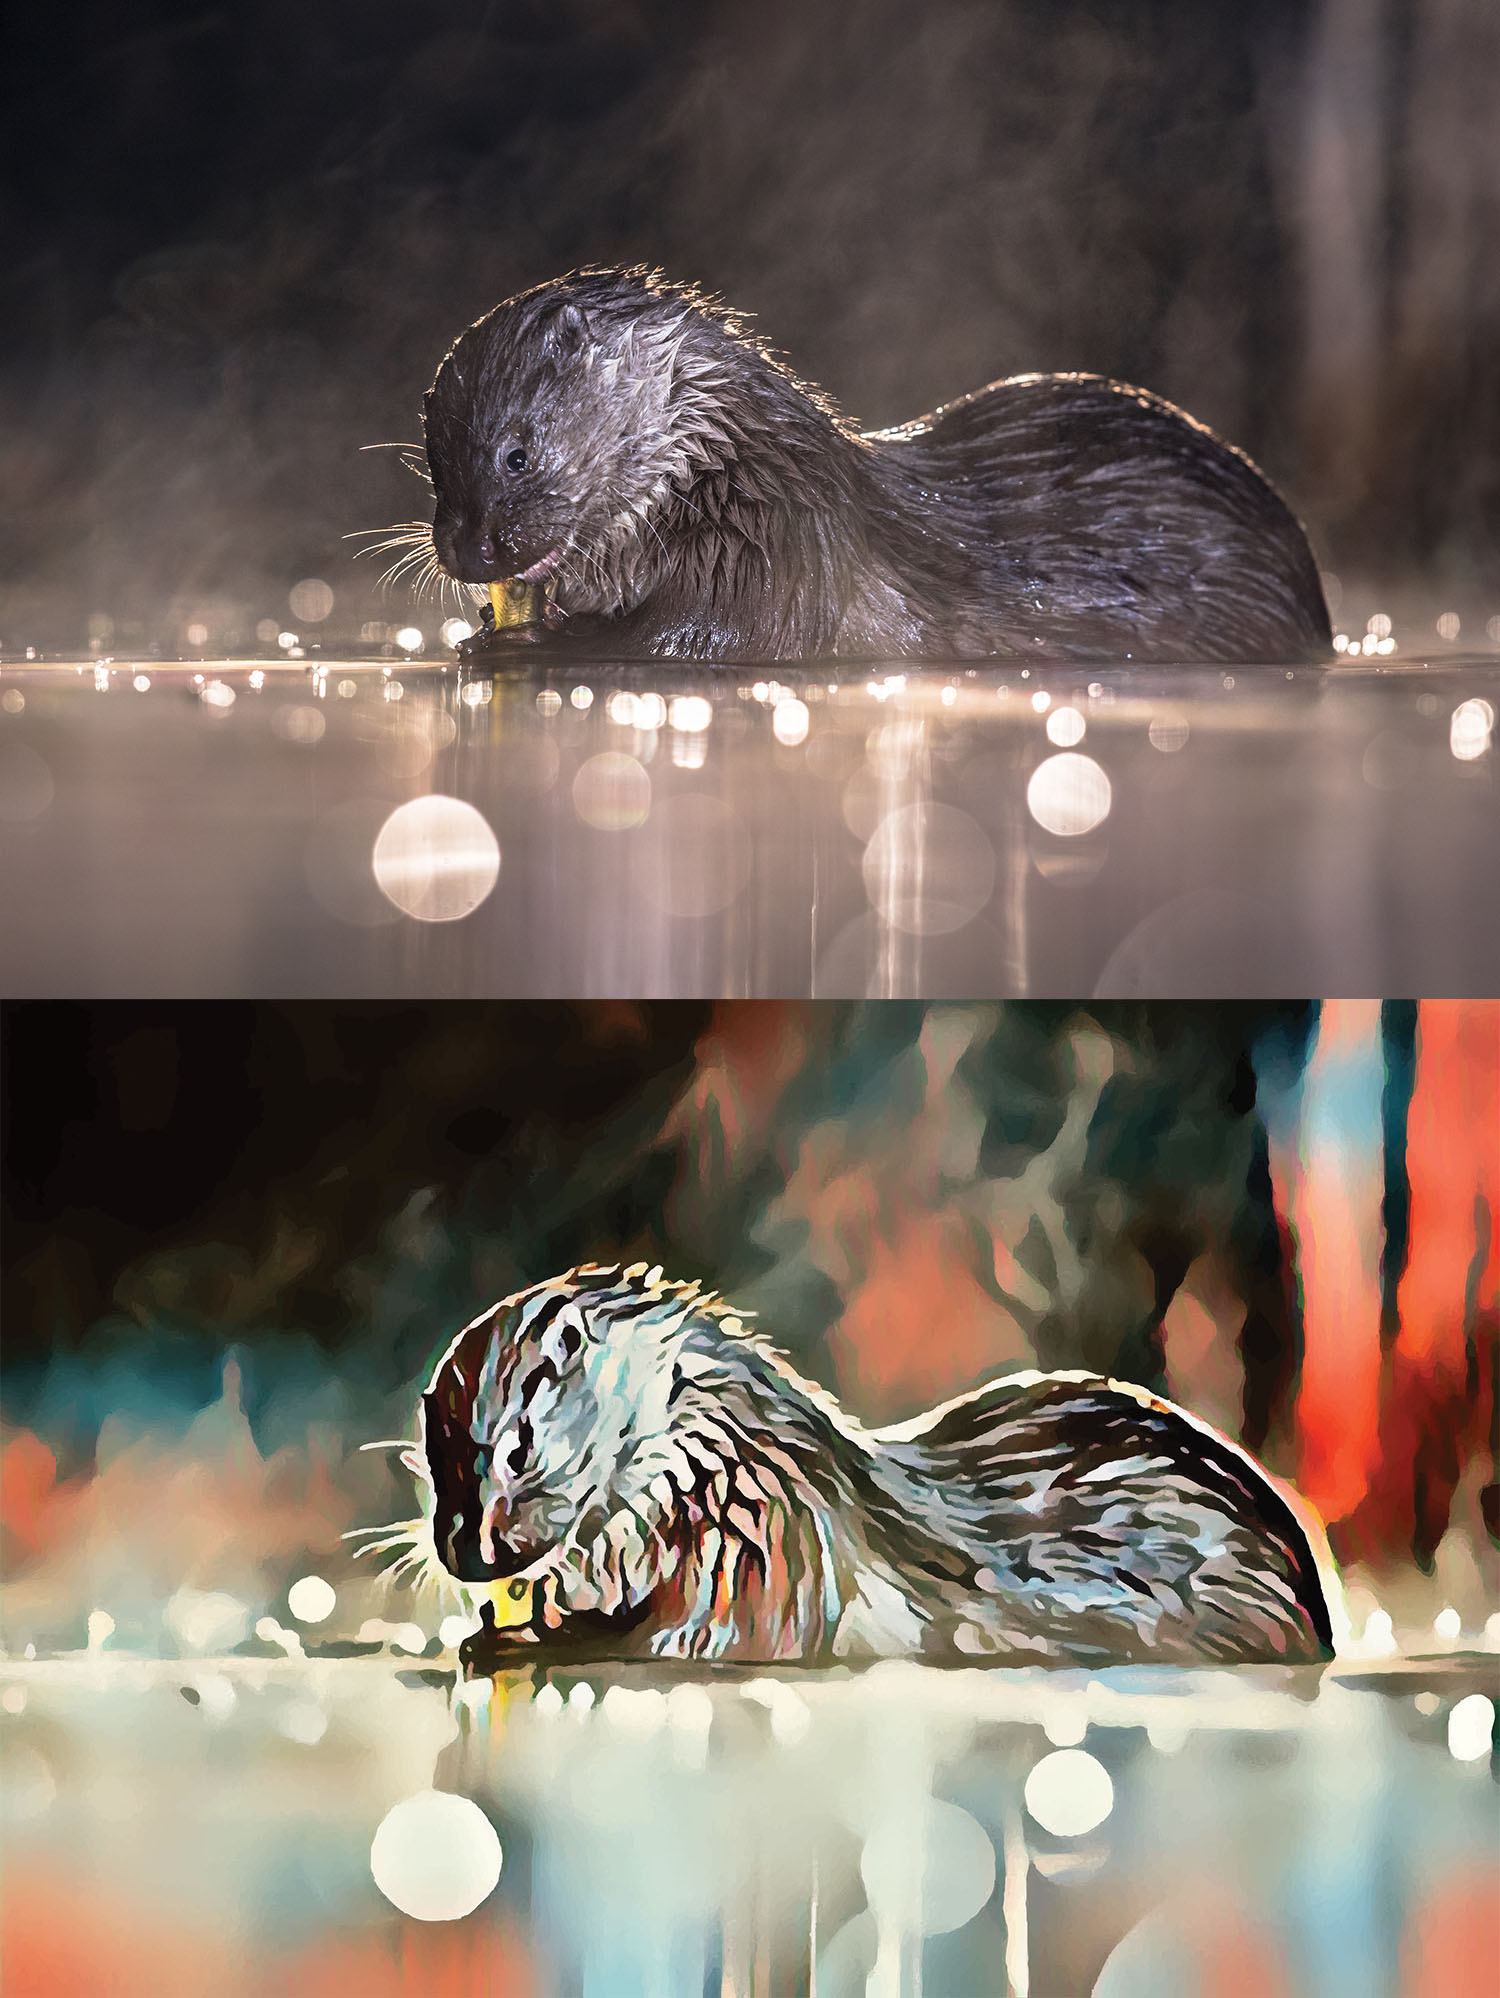 Before and after stylized image of an otter in the water chewing on something